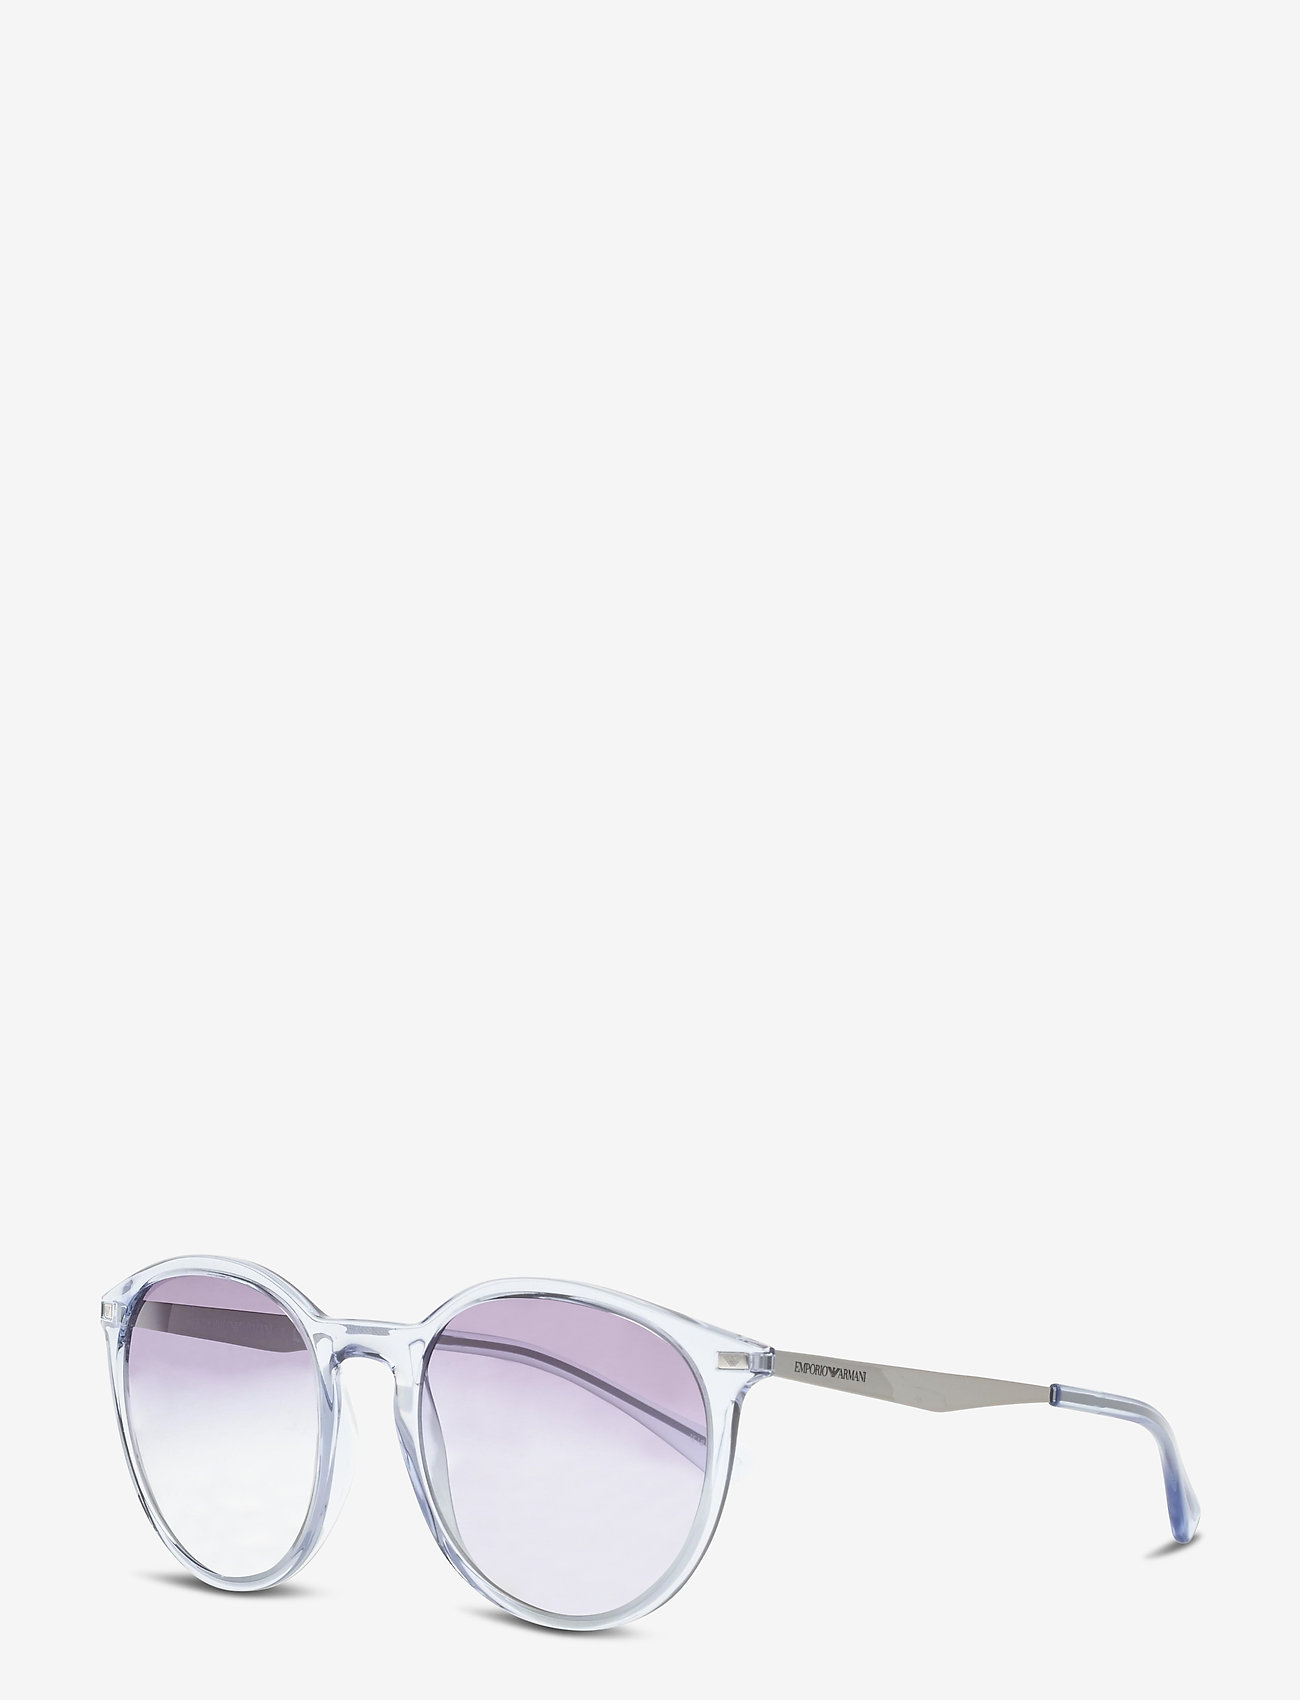 Emporio Armani Sunglasses - Sunglasses - rond model - gradient light blue - 1